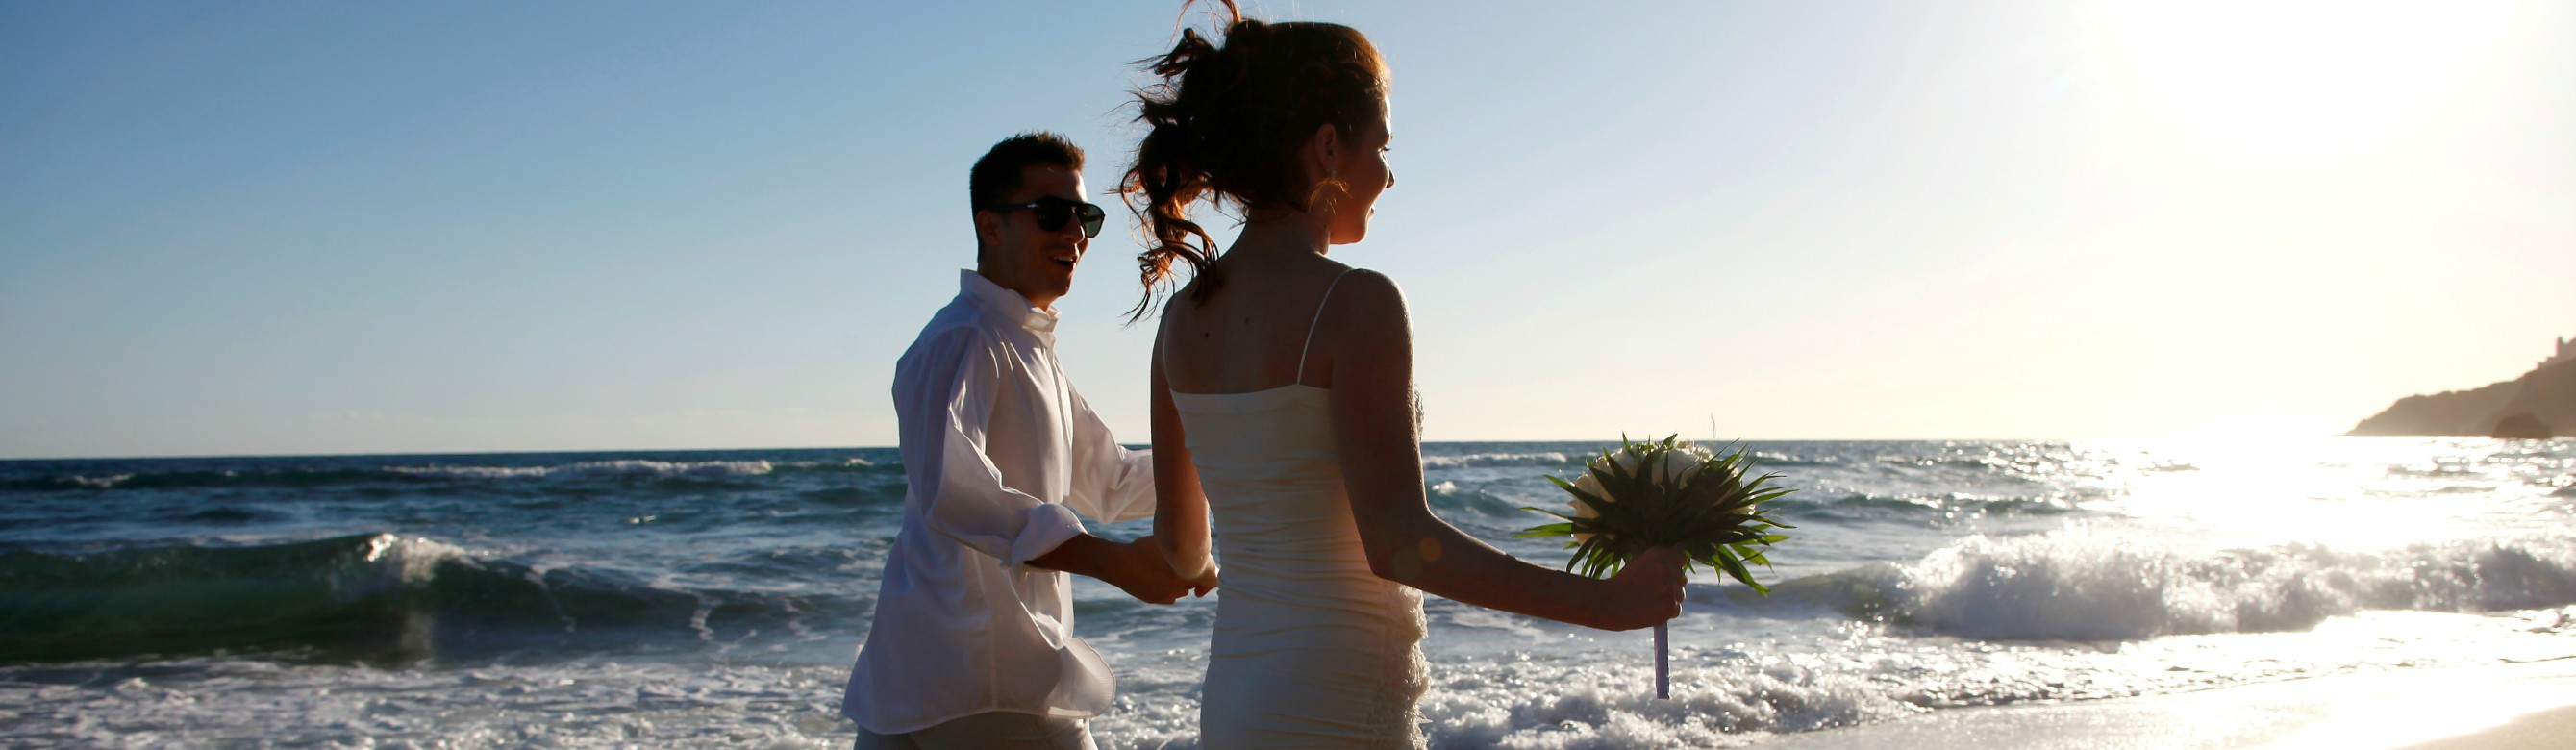 _ lti_Louis_Grand_-_Wedding_couple_by_the_sea_2.jpg